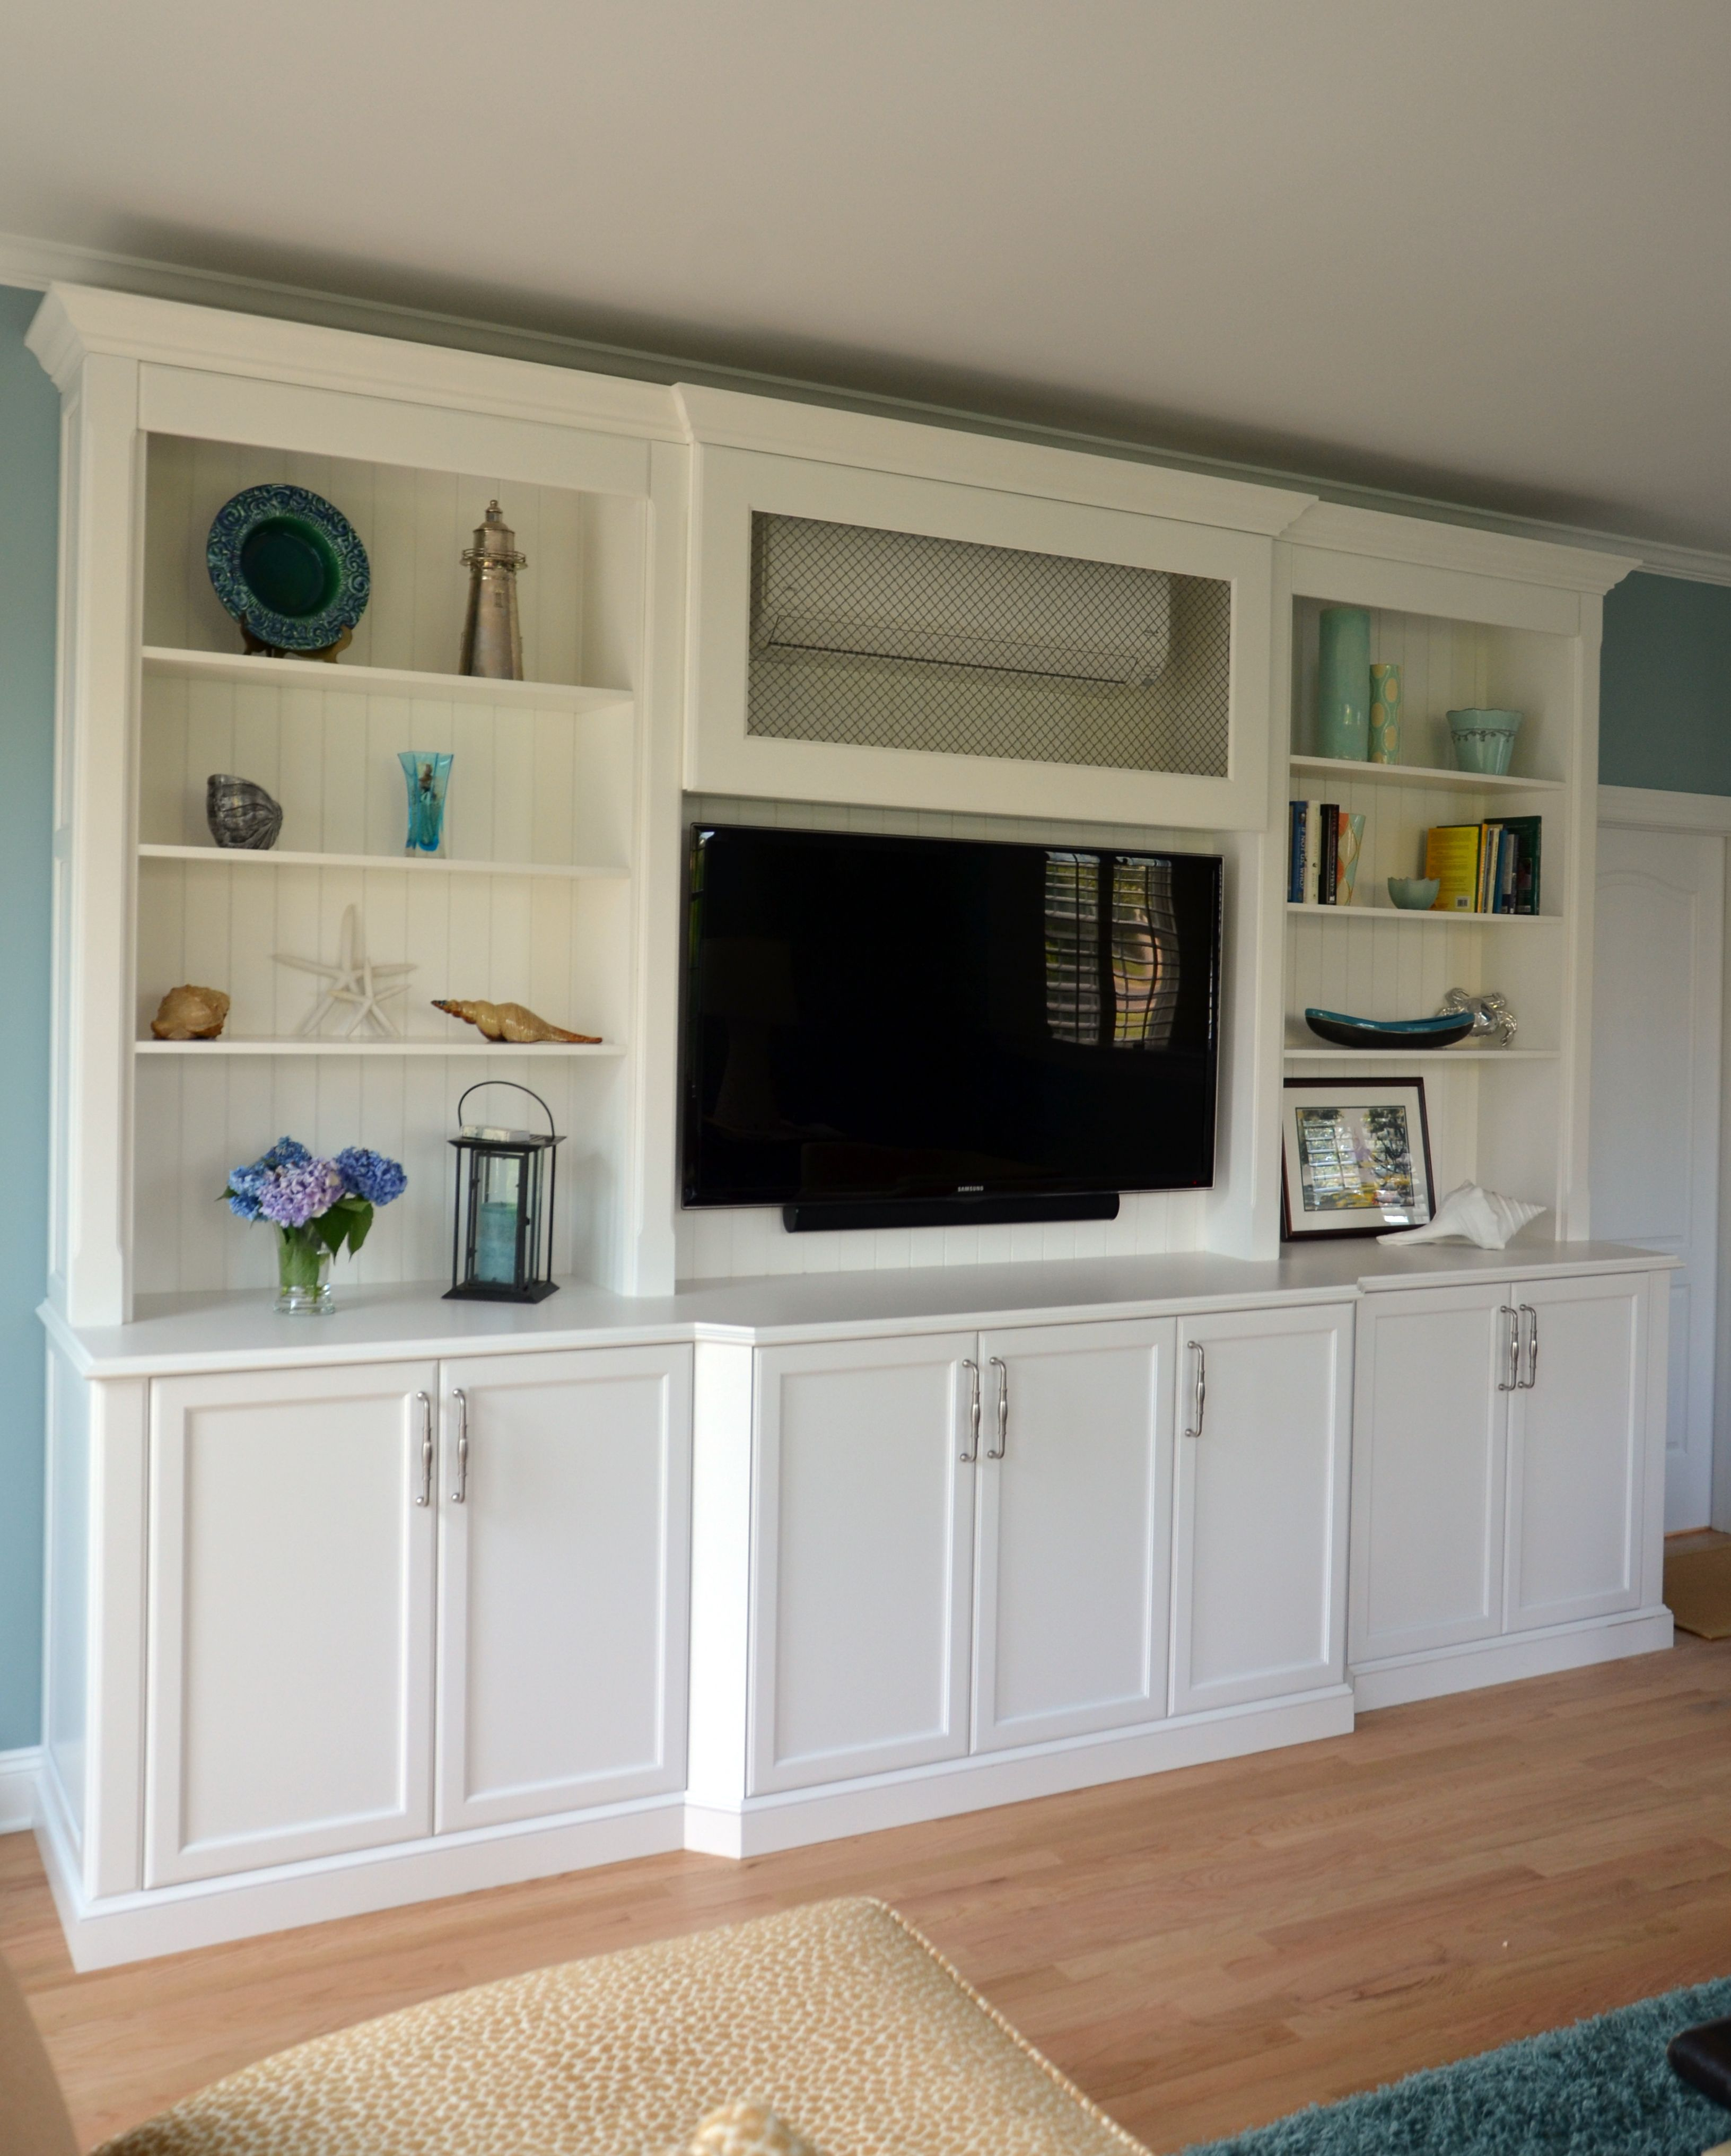 Custom Entertainment Center Wall New Jersey by Design Line